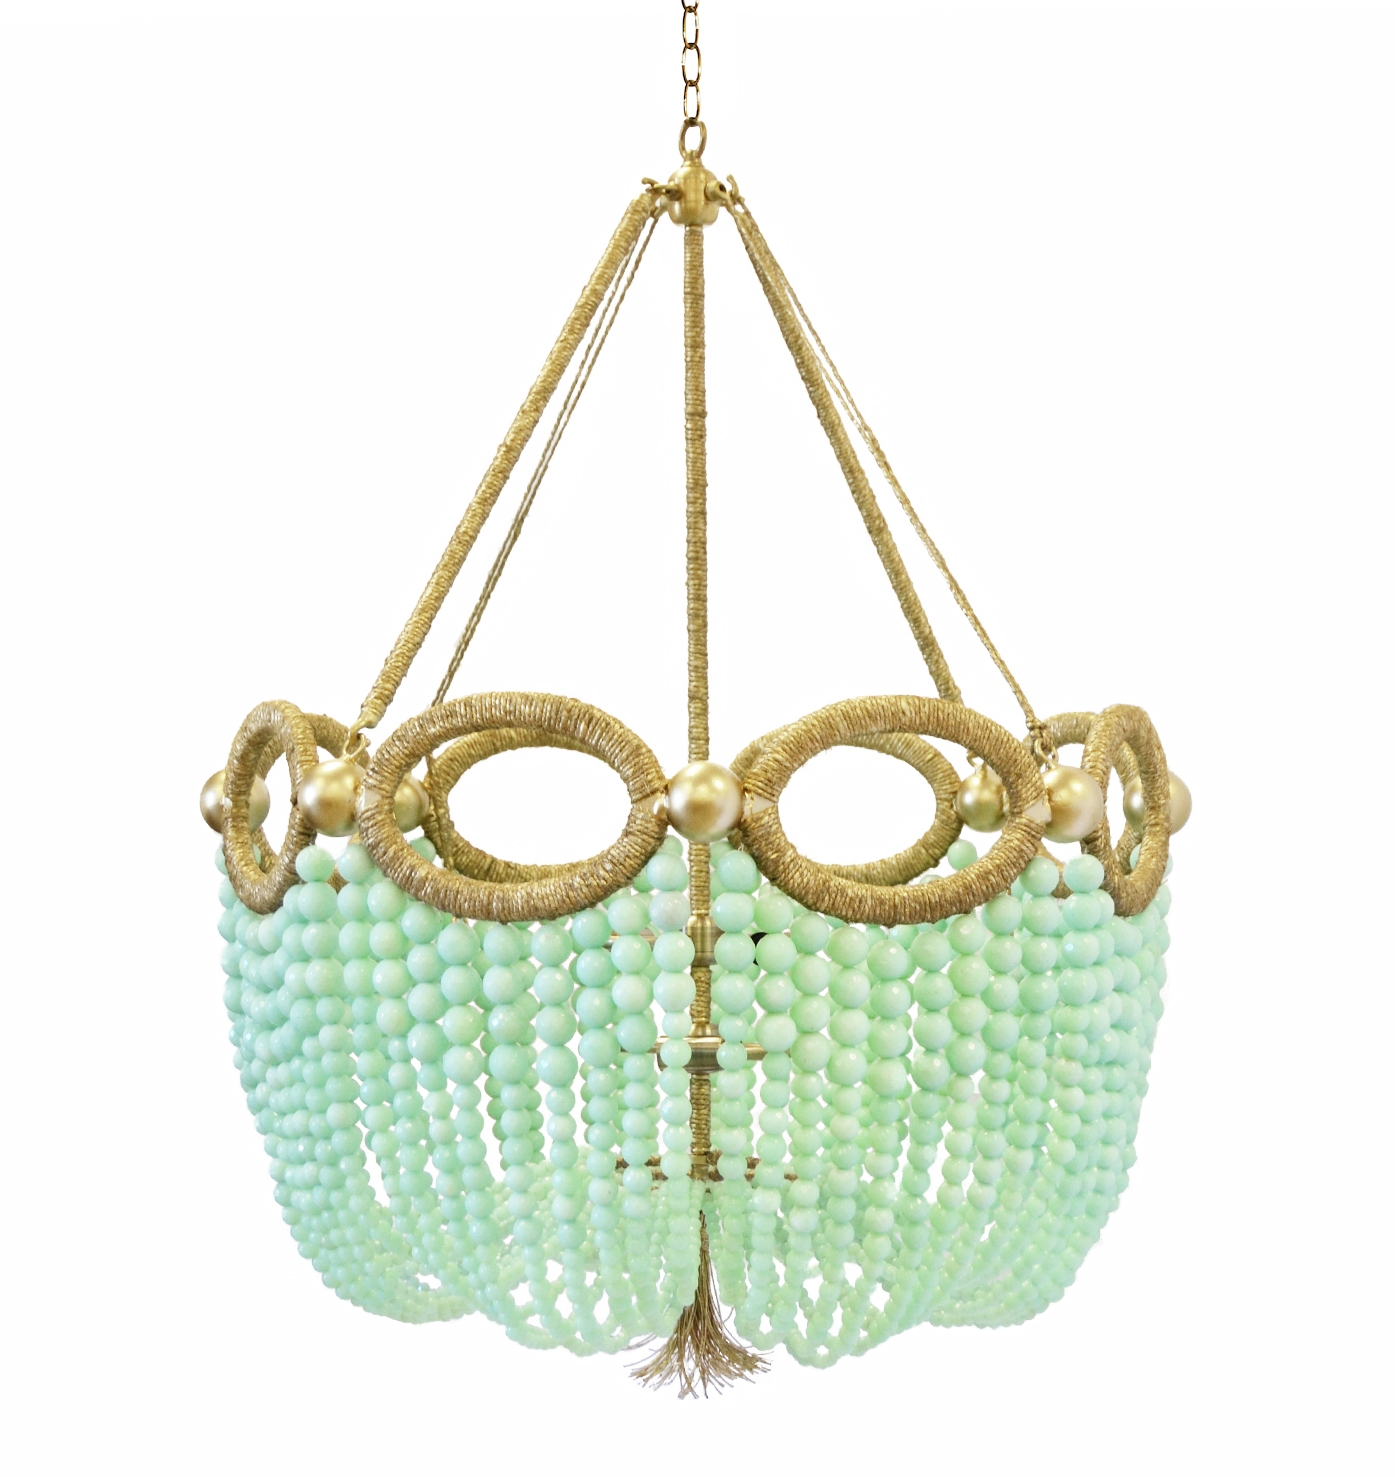 Fiona Ro Sham Beaux For Turquoise And Gold Chandeliers (Image 6 of 13)